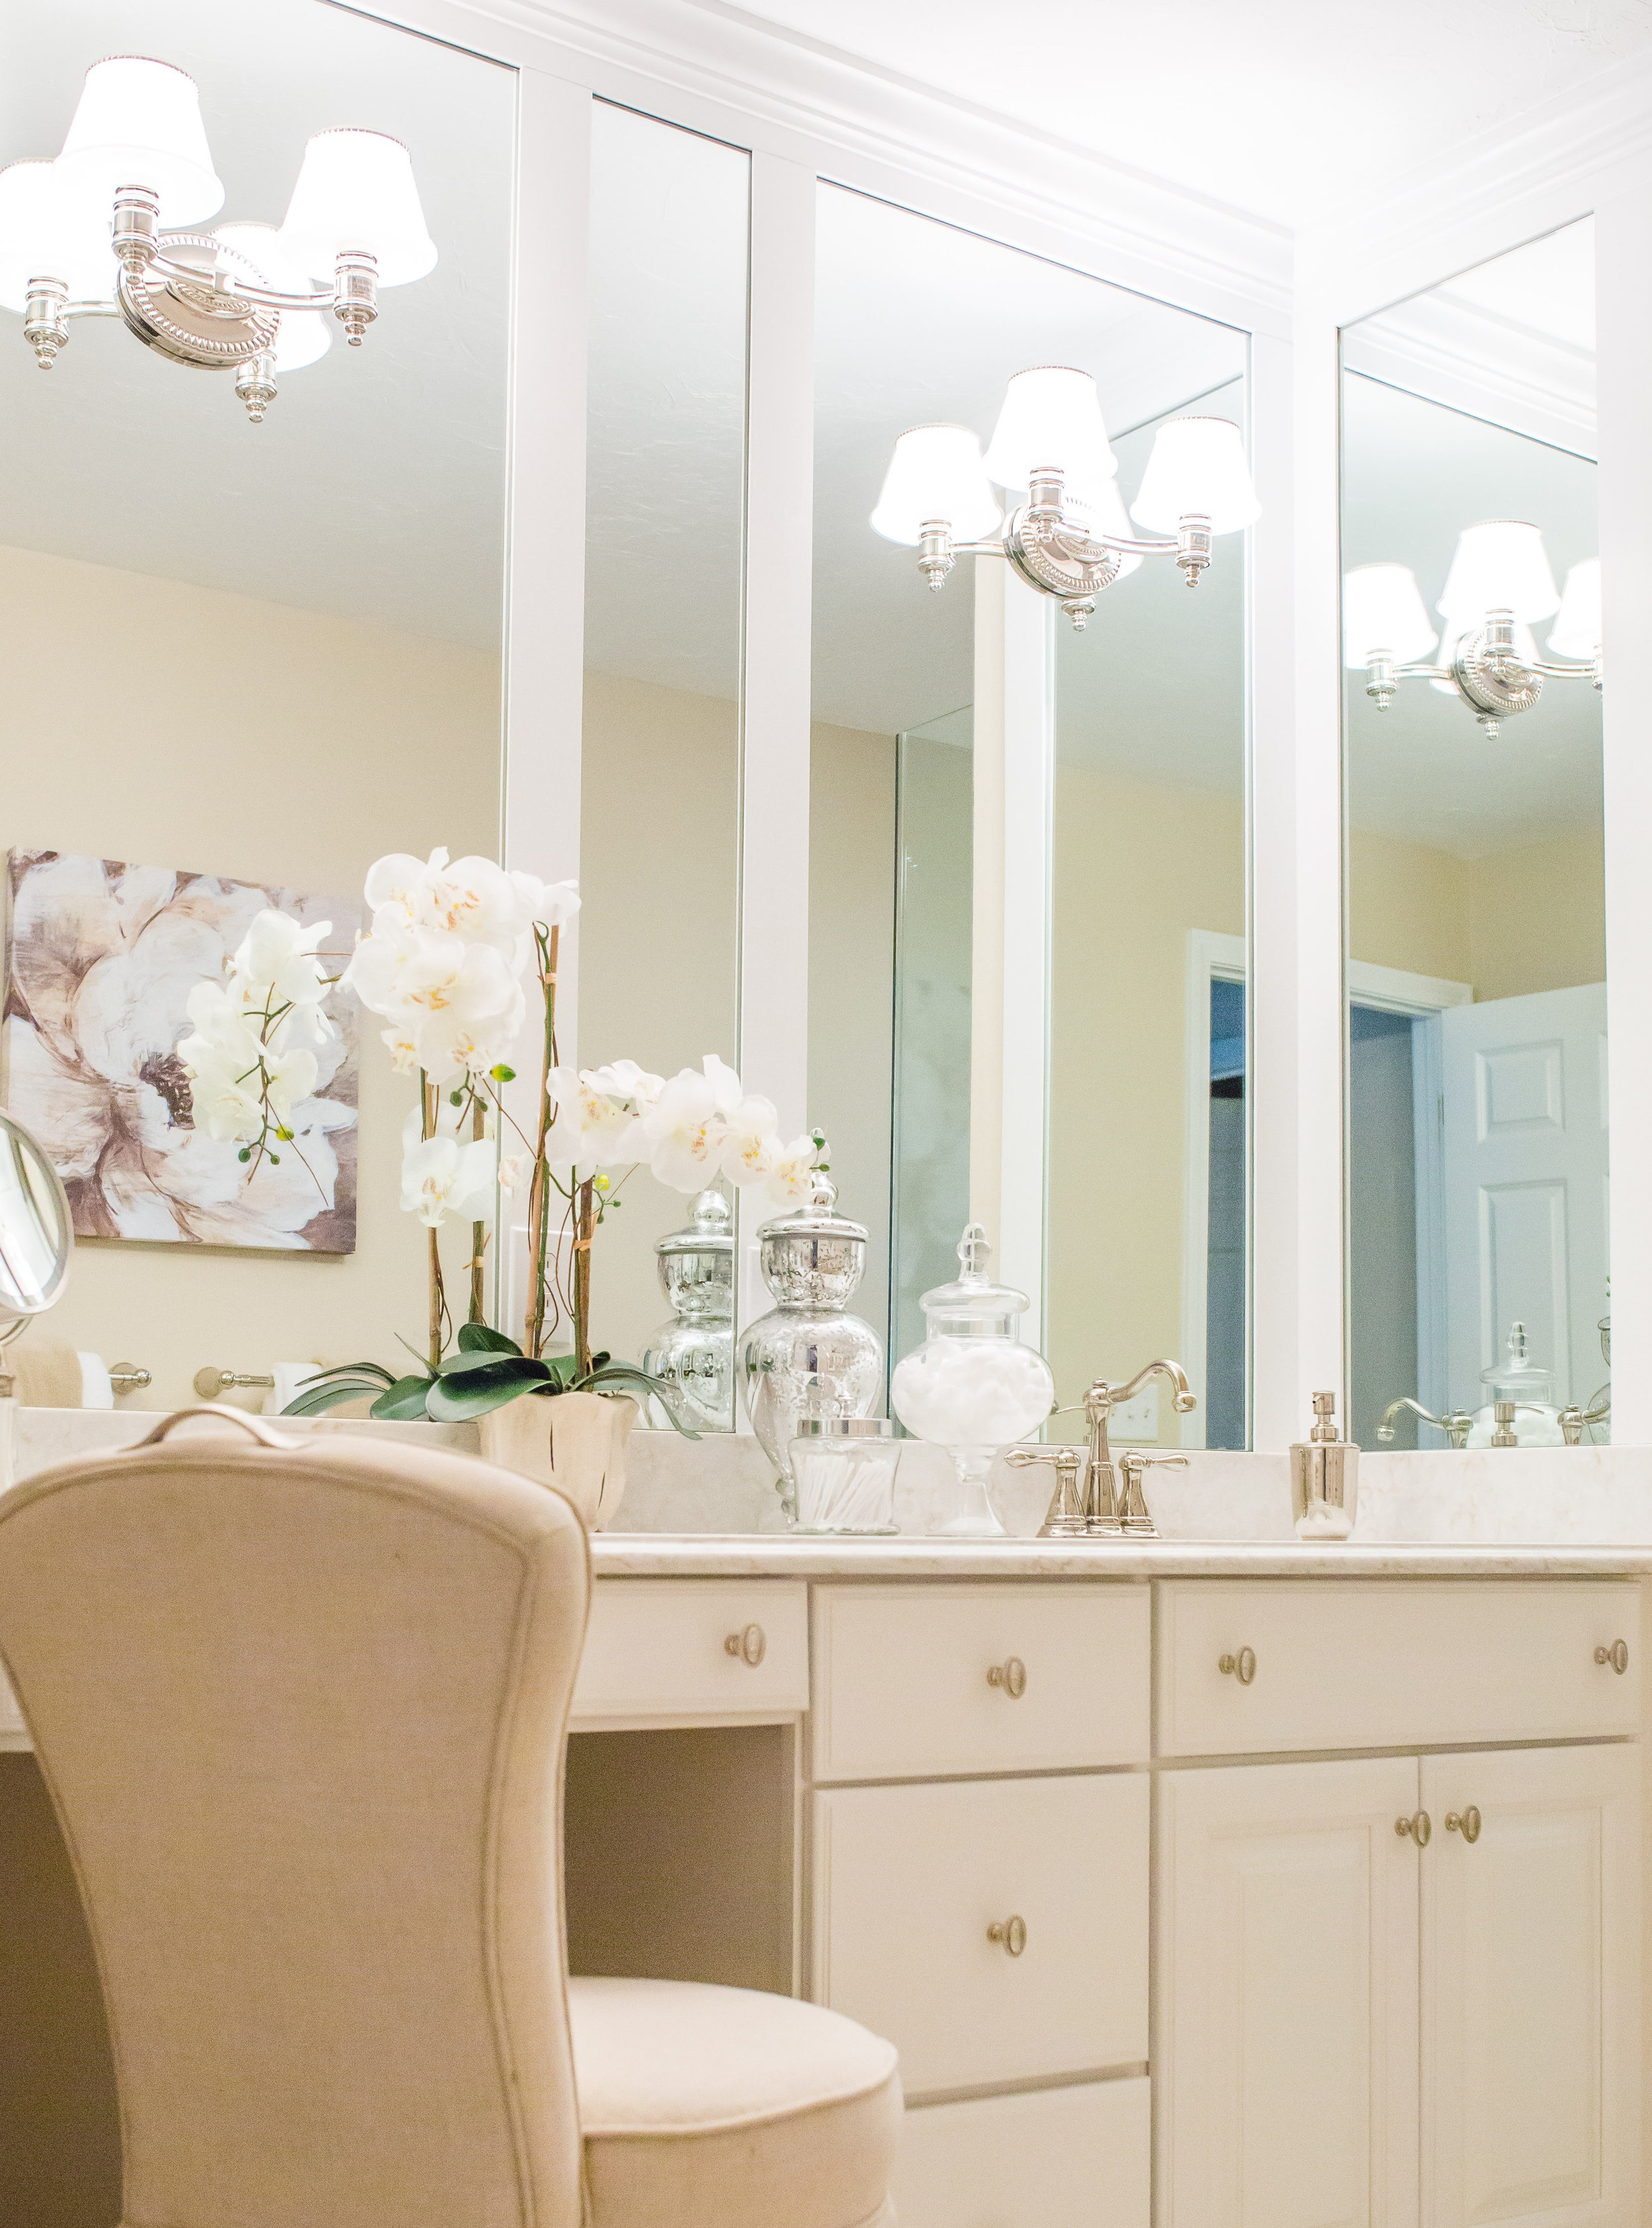 We always design bathroom mirror trim to line up with and complement the cabinetry below. Trim and mirror wrap all three sides of this vanity alcove, and light fixtures were mounted through the mirror to effectively increase the light produced.